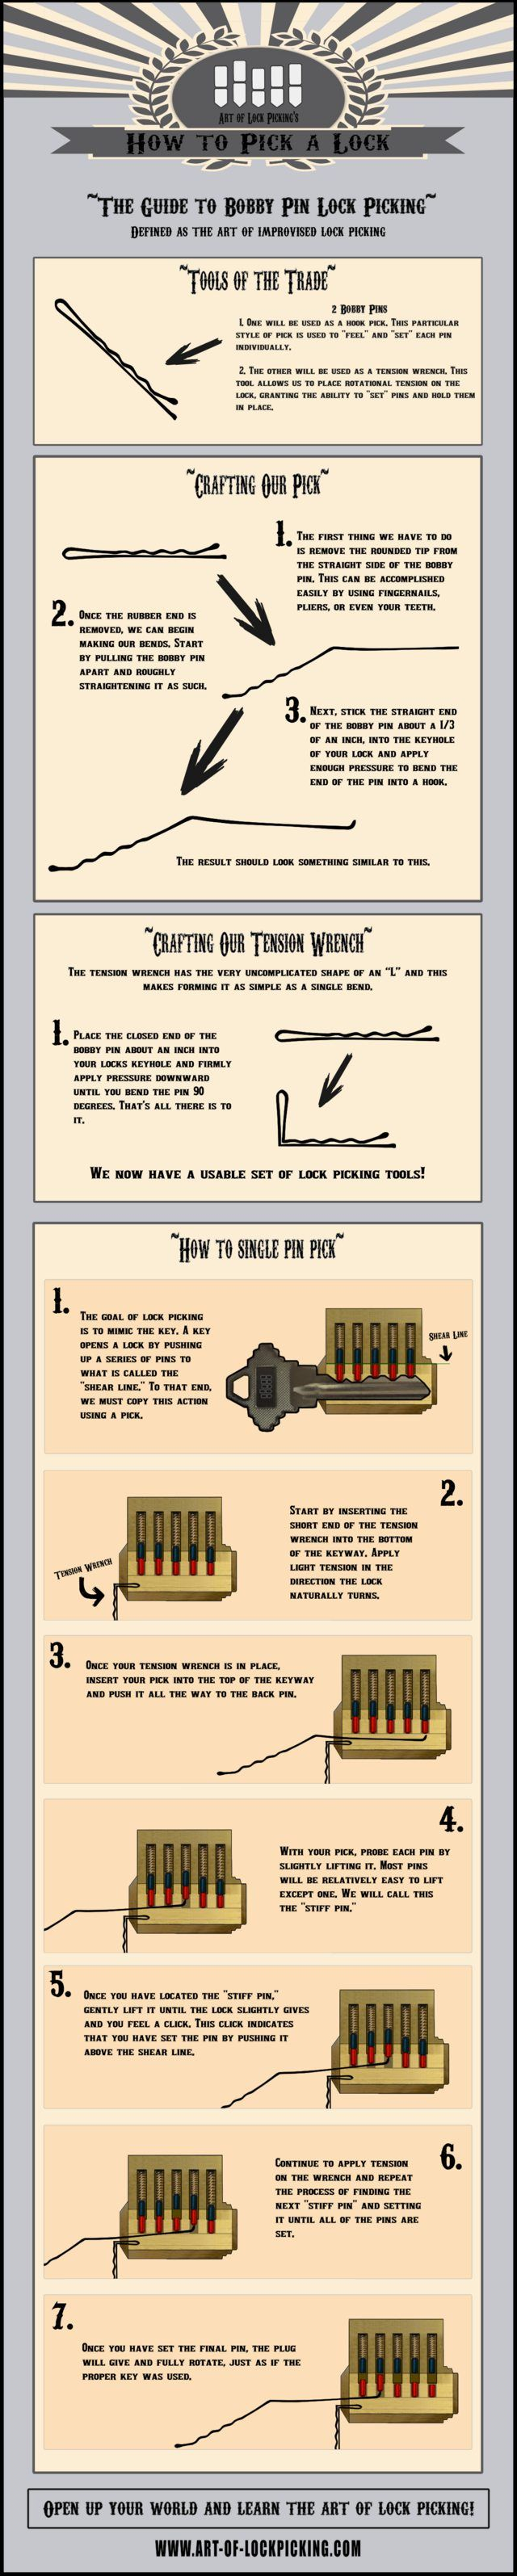 hight resolution of how to pick a lock with a bobby pin